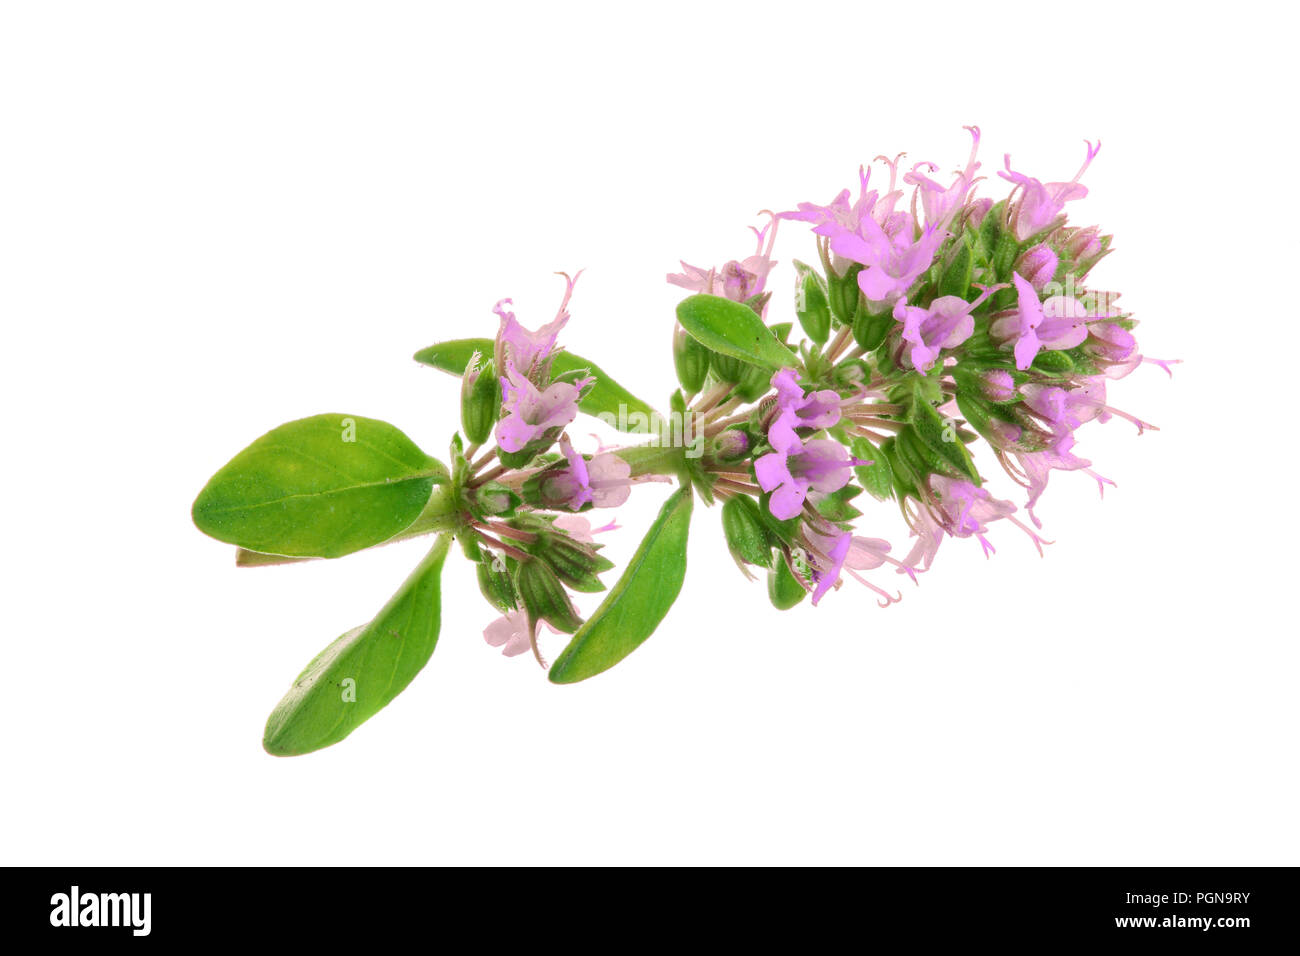 flowering twig thyme spice isolated on white background - Stock Image